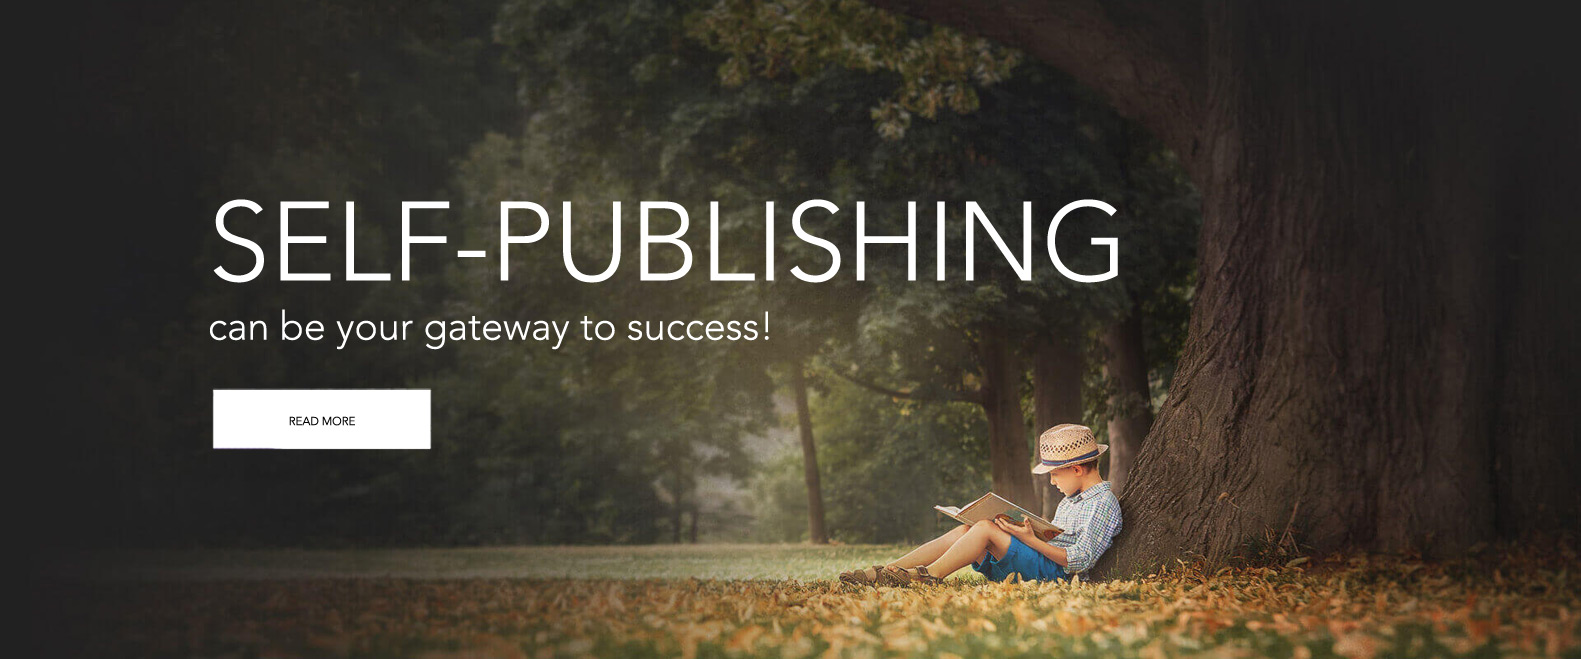 Self-Publishing My Book: Self-Publishing